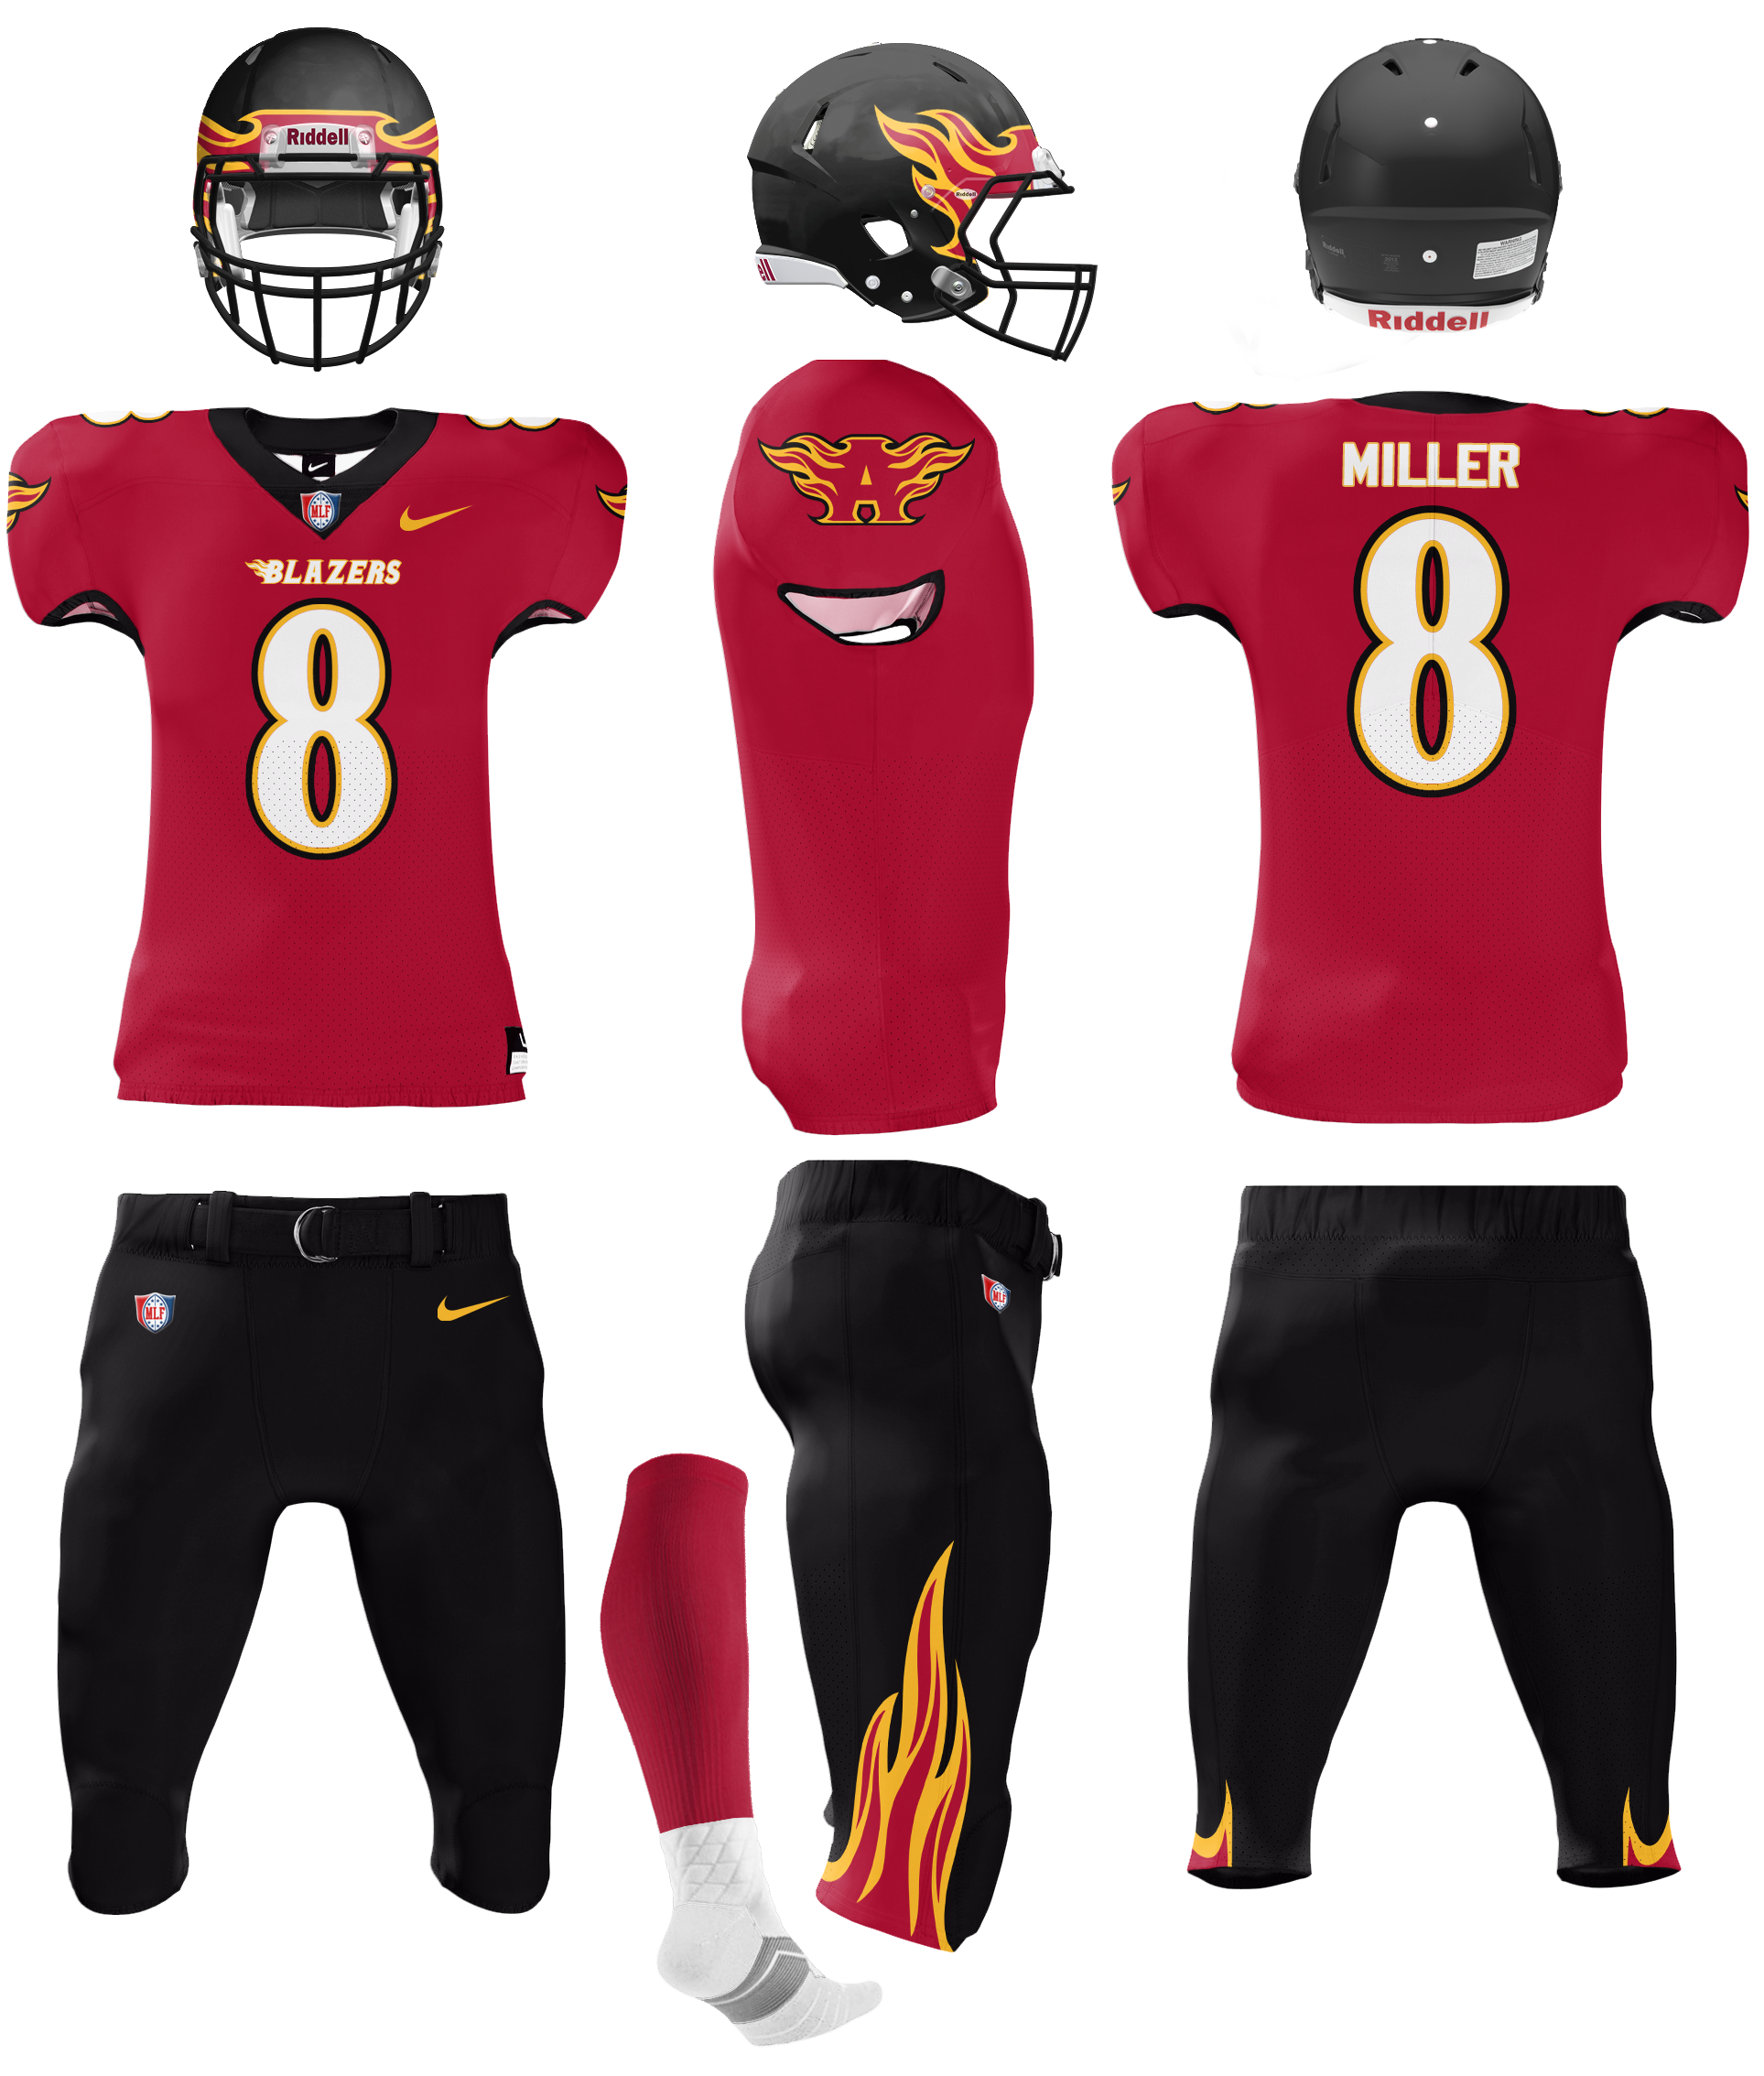 Major League Football Is Back And Better Than Ever Concepts Chris Creamer S Sports Logos Community Ccslc Sportslo In 2020 Major League Football Uniforms League